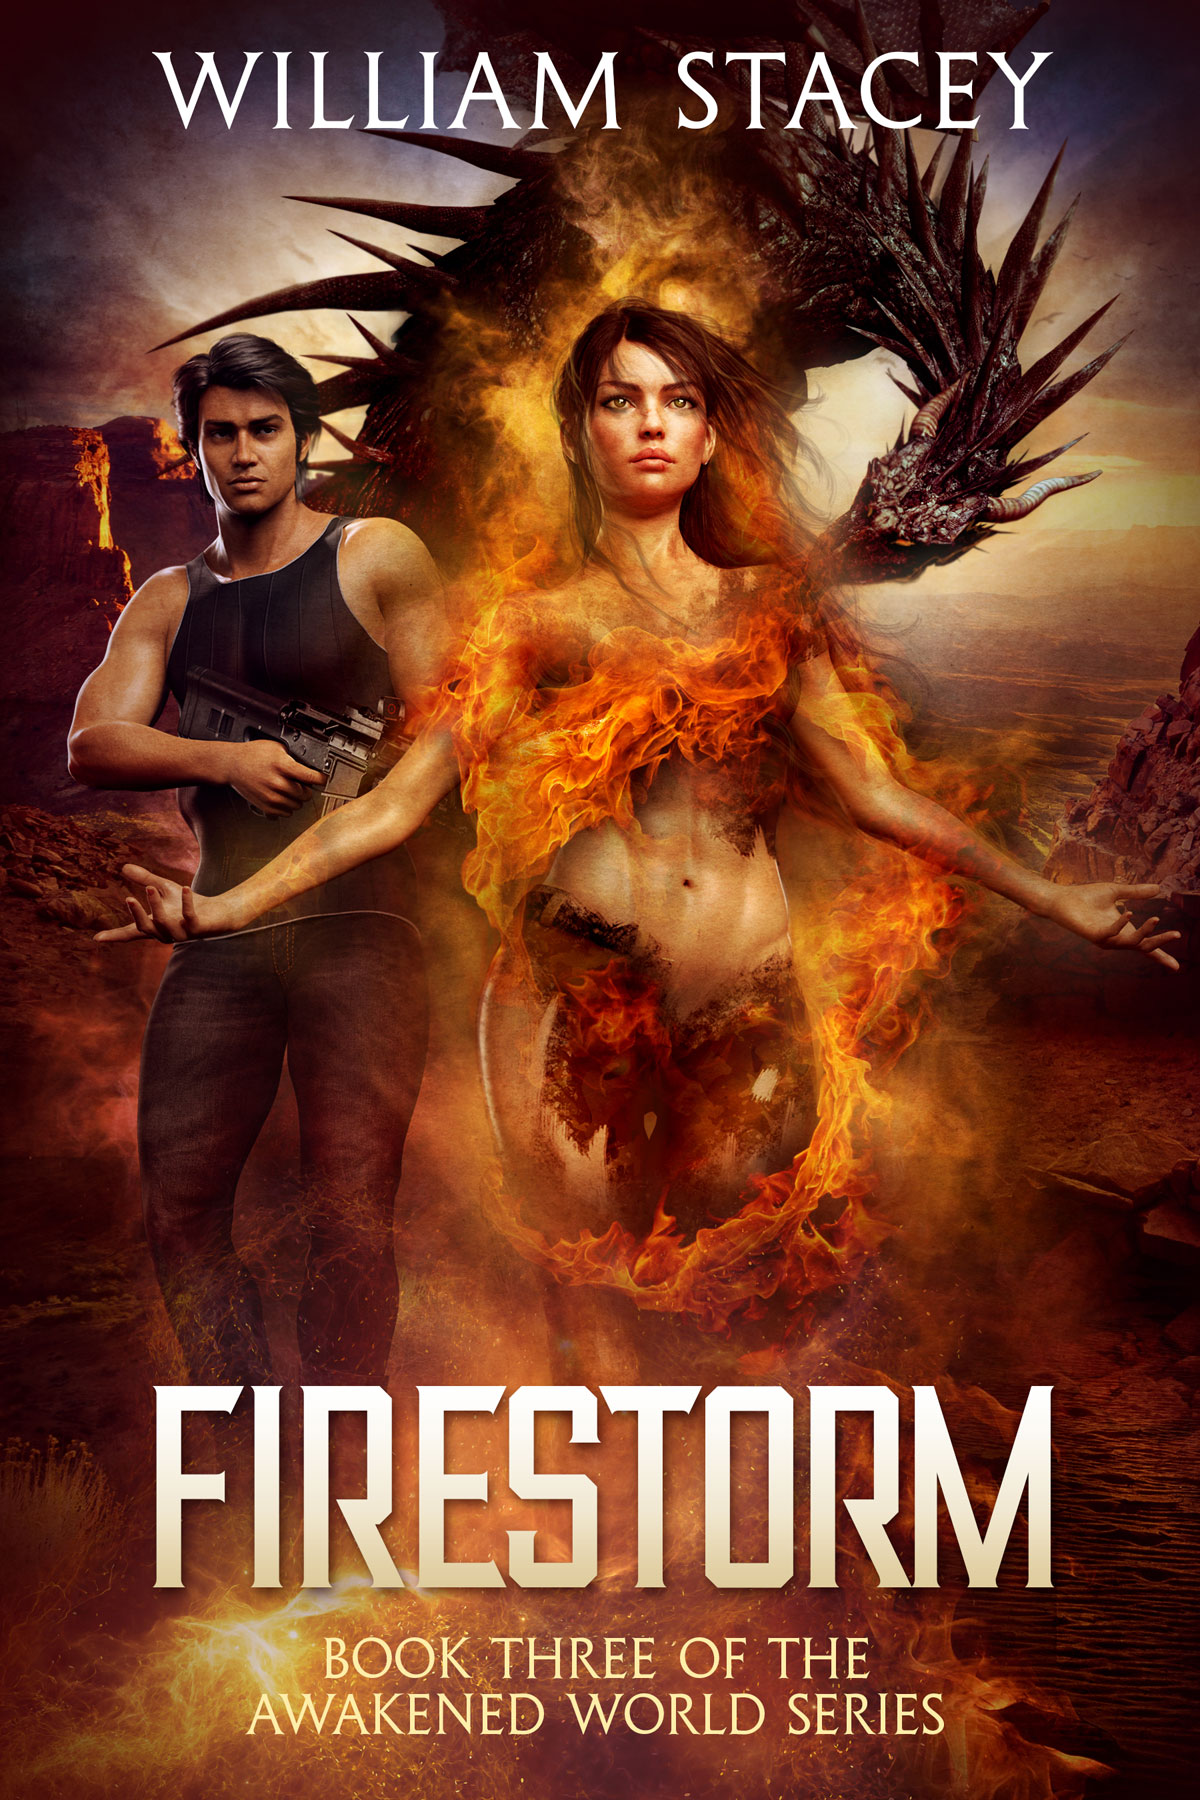 Firestorm, Book 3 of The Awakened World by William Stacey